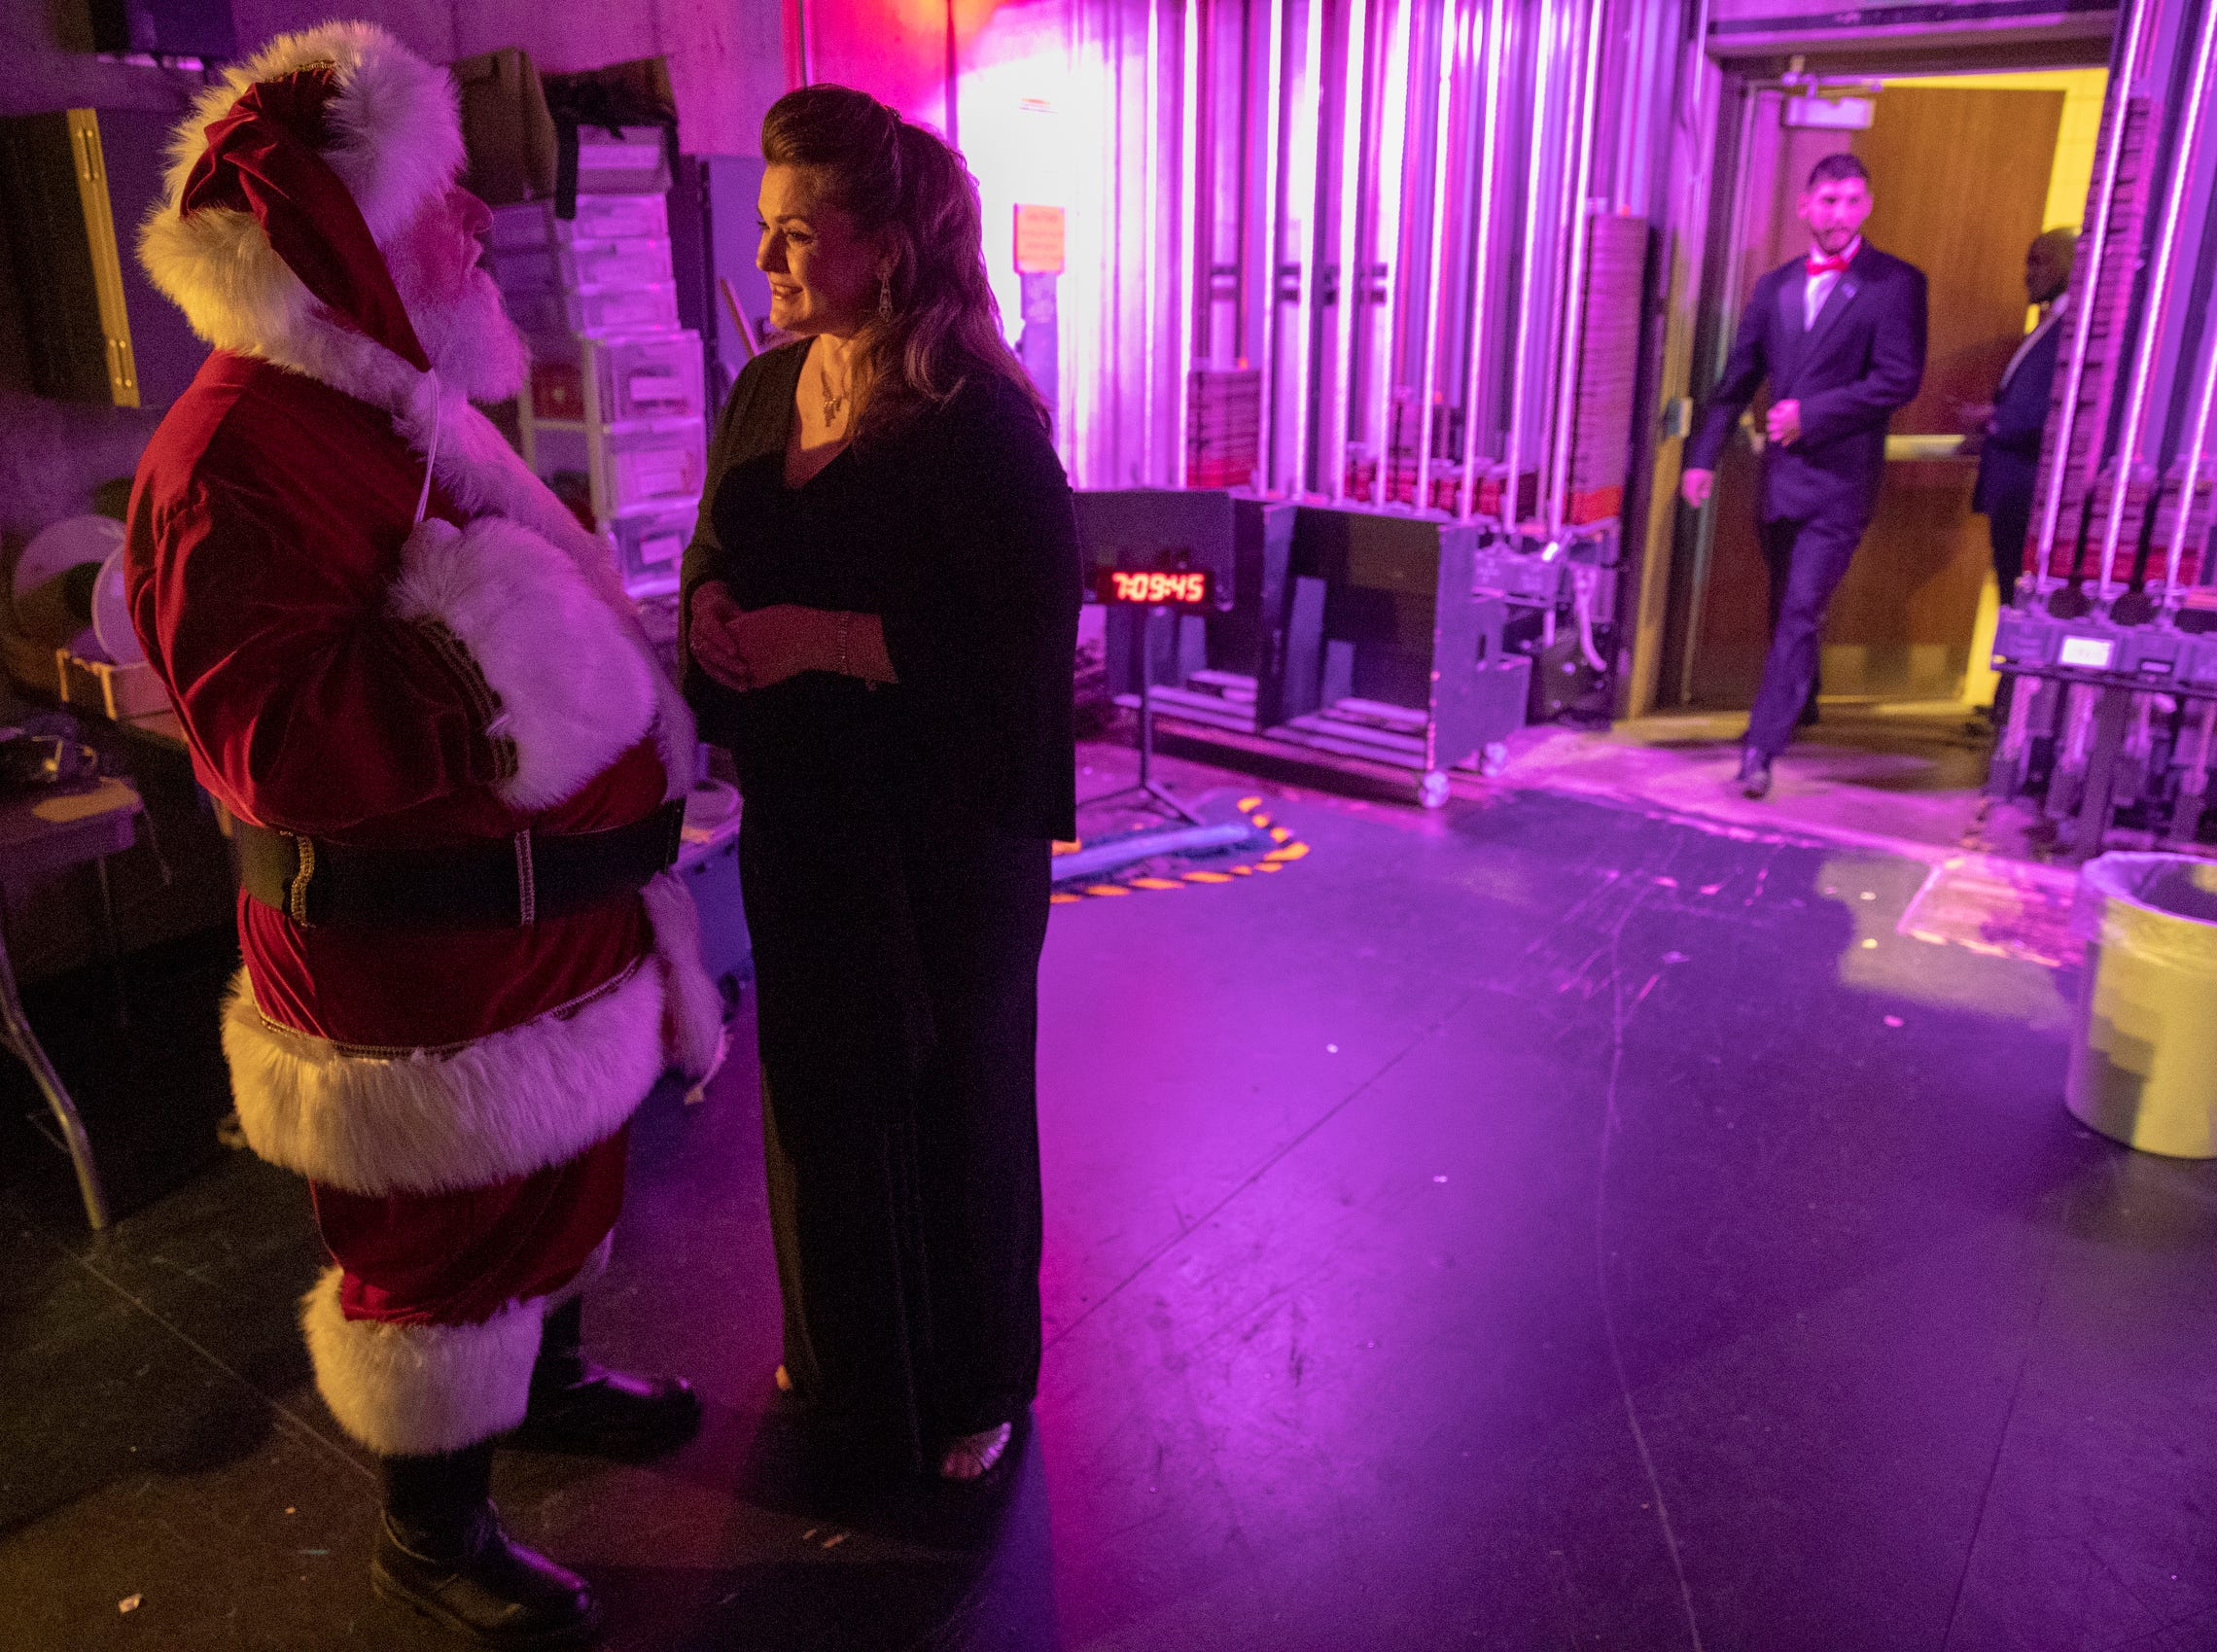 Santa Claus chats with Michele McConnell before the evening's Festival of Carols performance at Warren Performing Arts Center, Sunday, Dec; 9, 2018. McConnell is a soprano from Indianapolis, and has lived and performed at the highest level in New York for the past 20 years. Dance Kaleidoscope and Indianapolis Chamber Orchestra joined the Indianapolis Symphonic Choir for the show, that will be repeated several more times in the area this season.